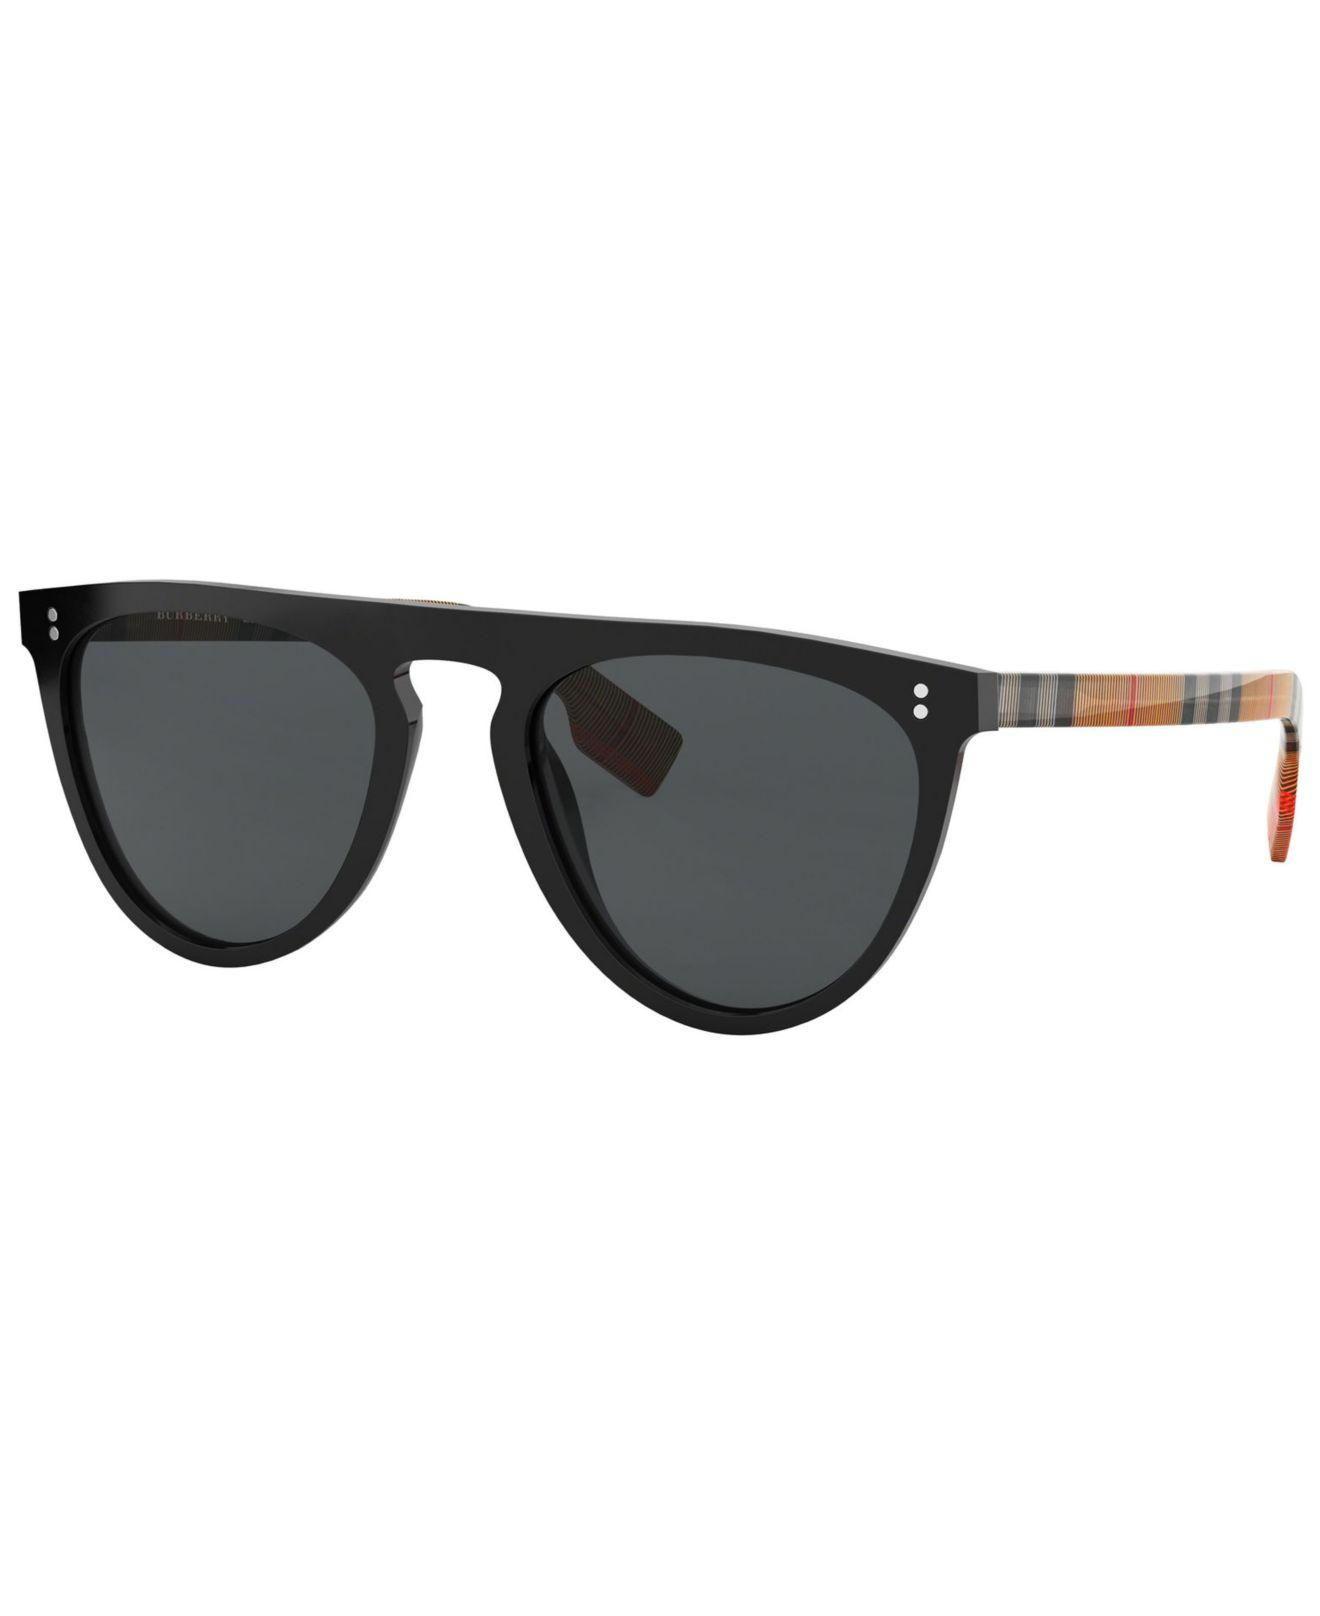 d0f052c69eb Lyst - Burberry Be4281 in Black for Men